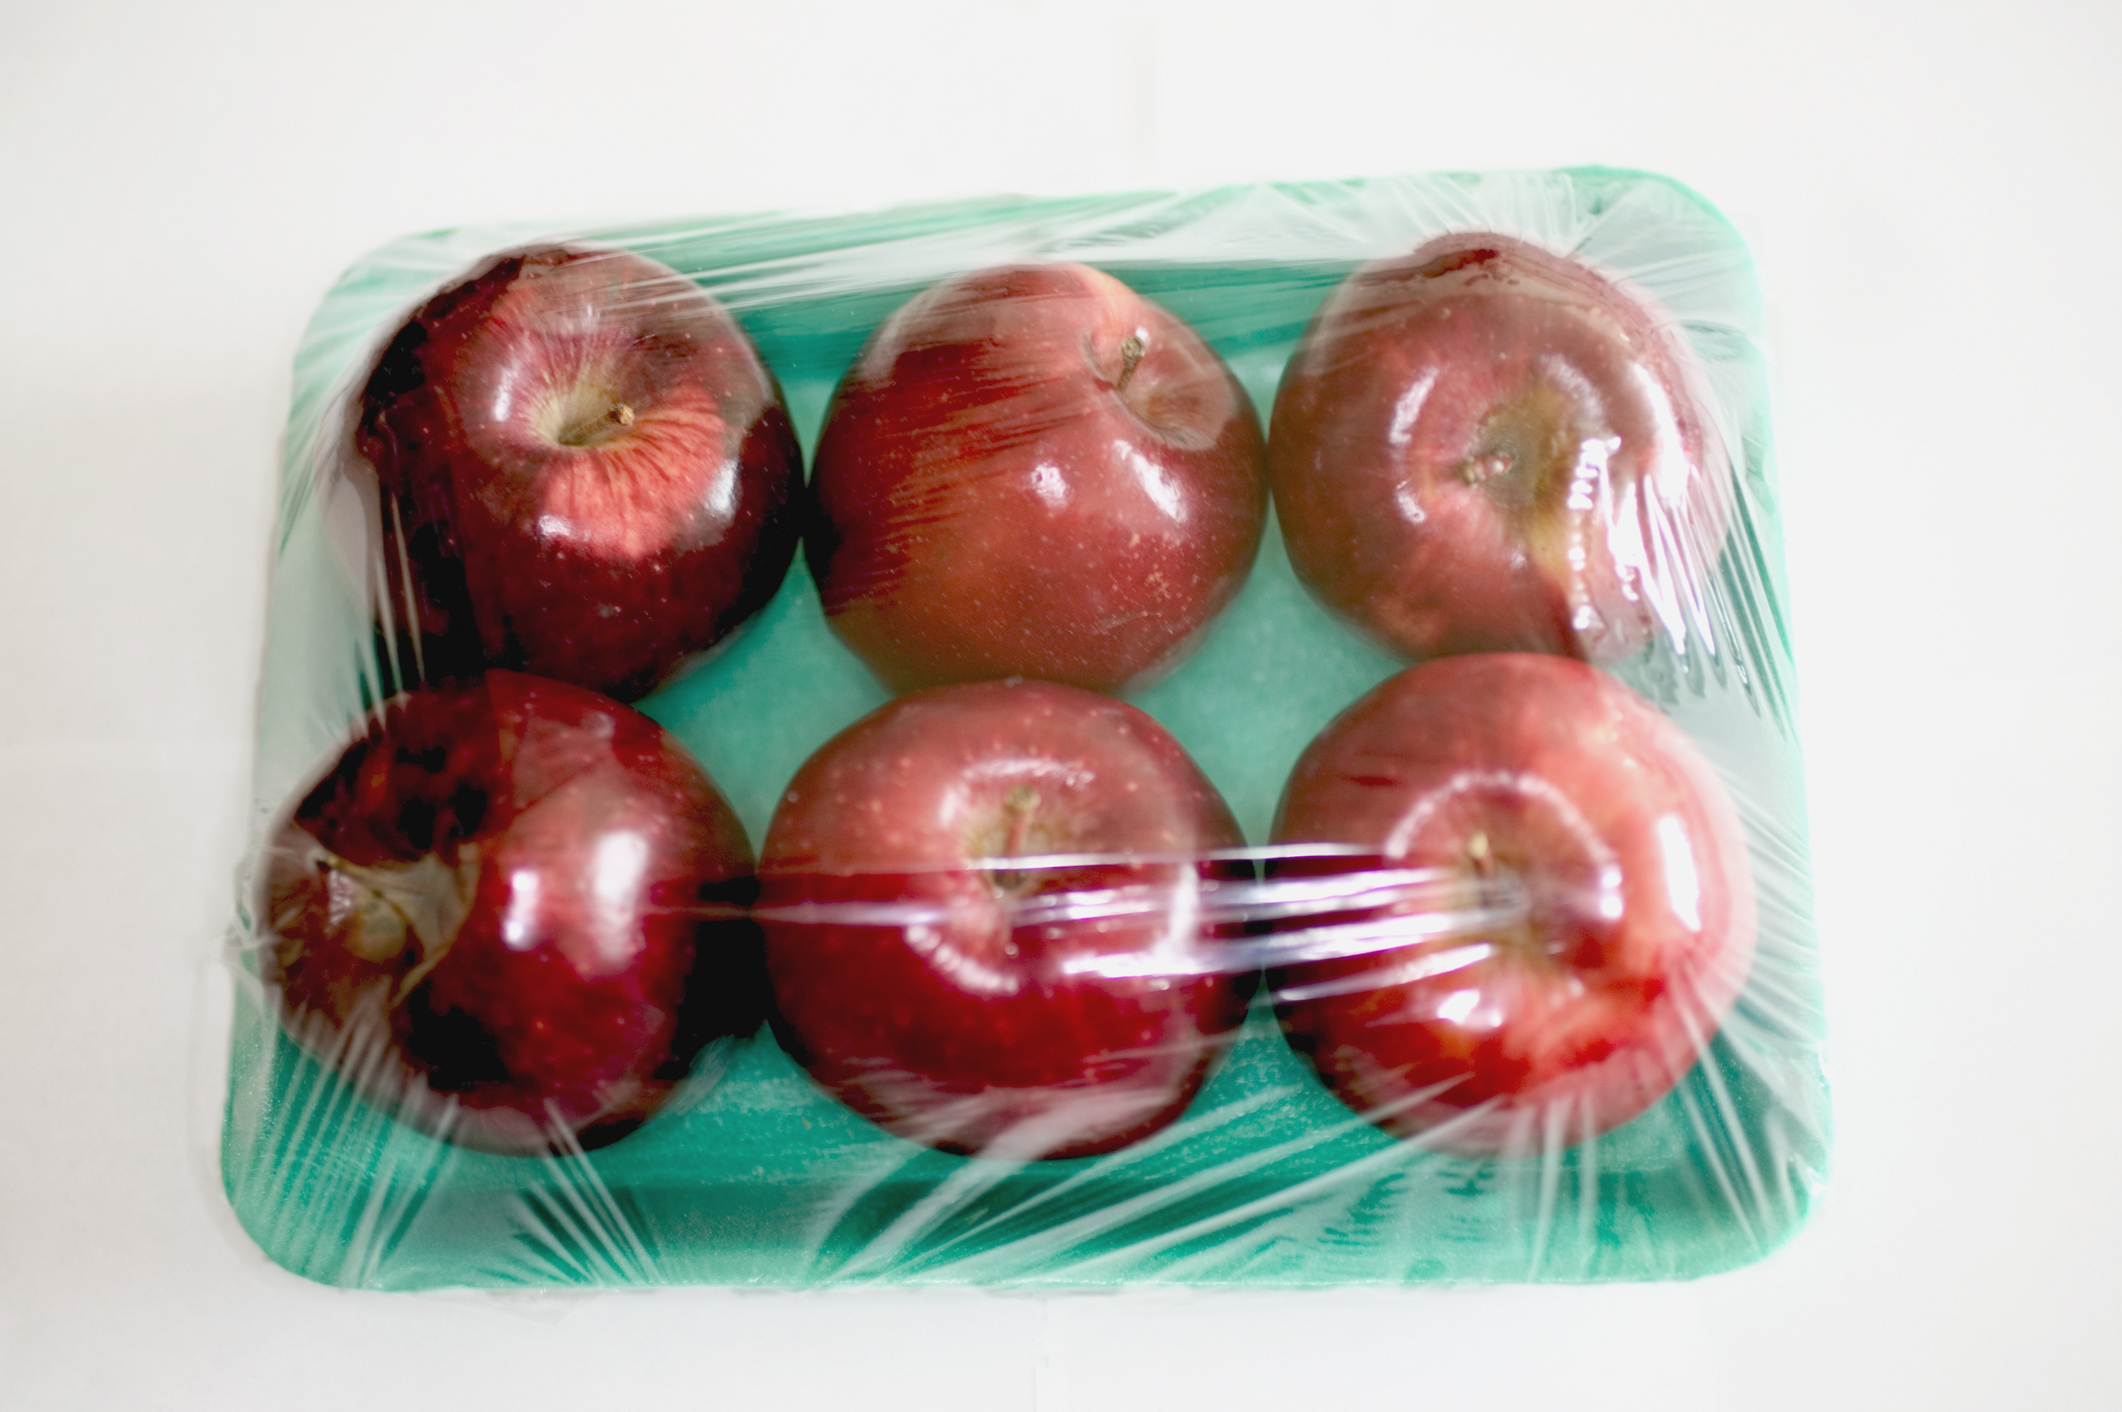 Cellophane Wrapped Apples